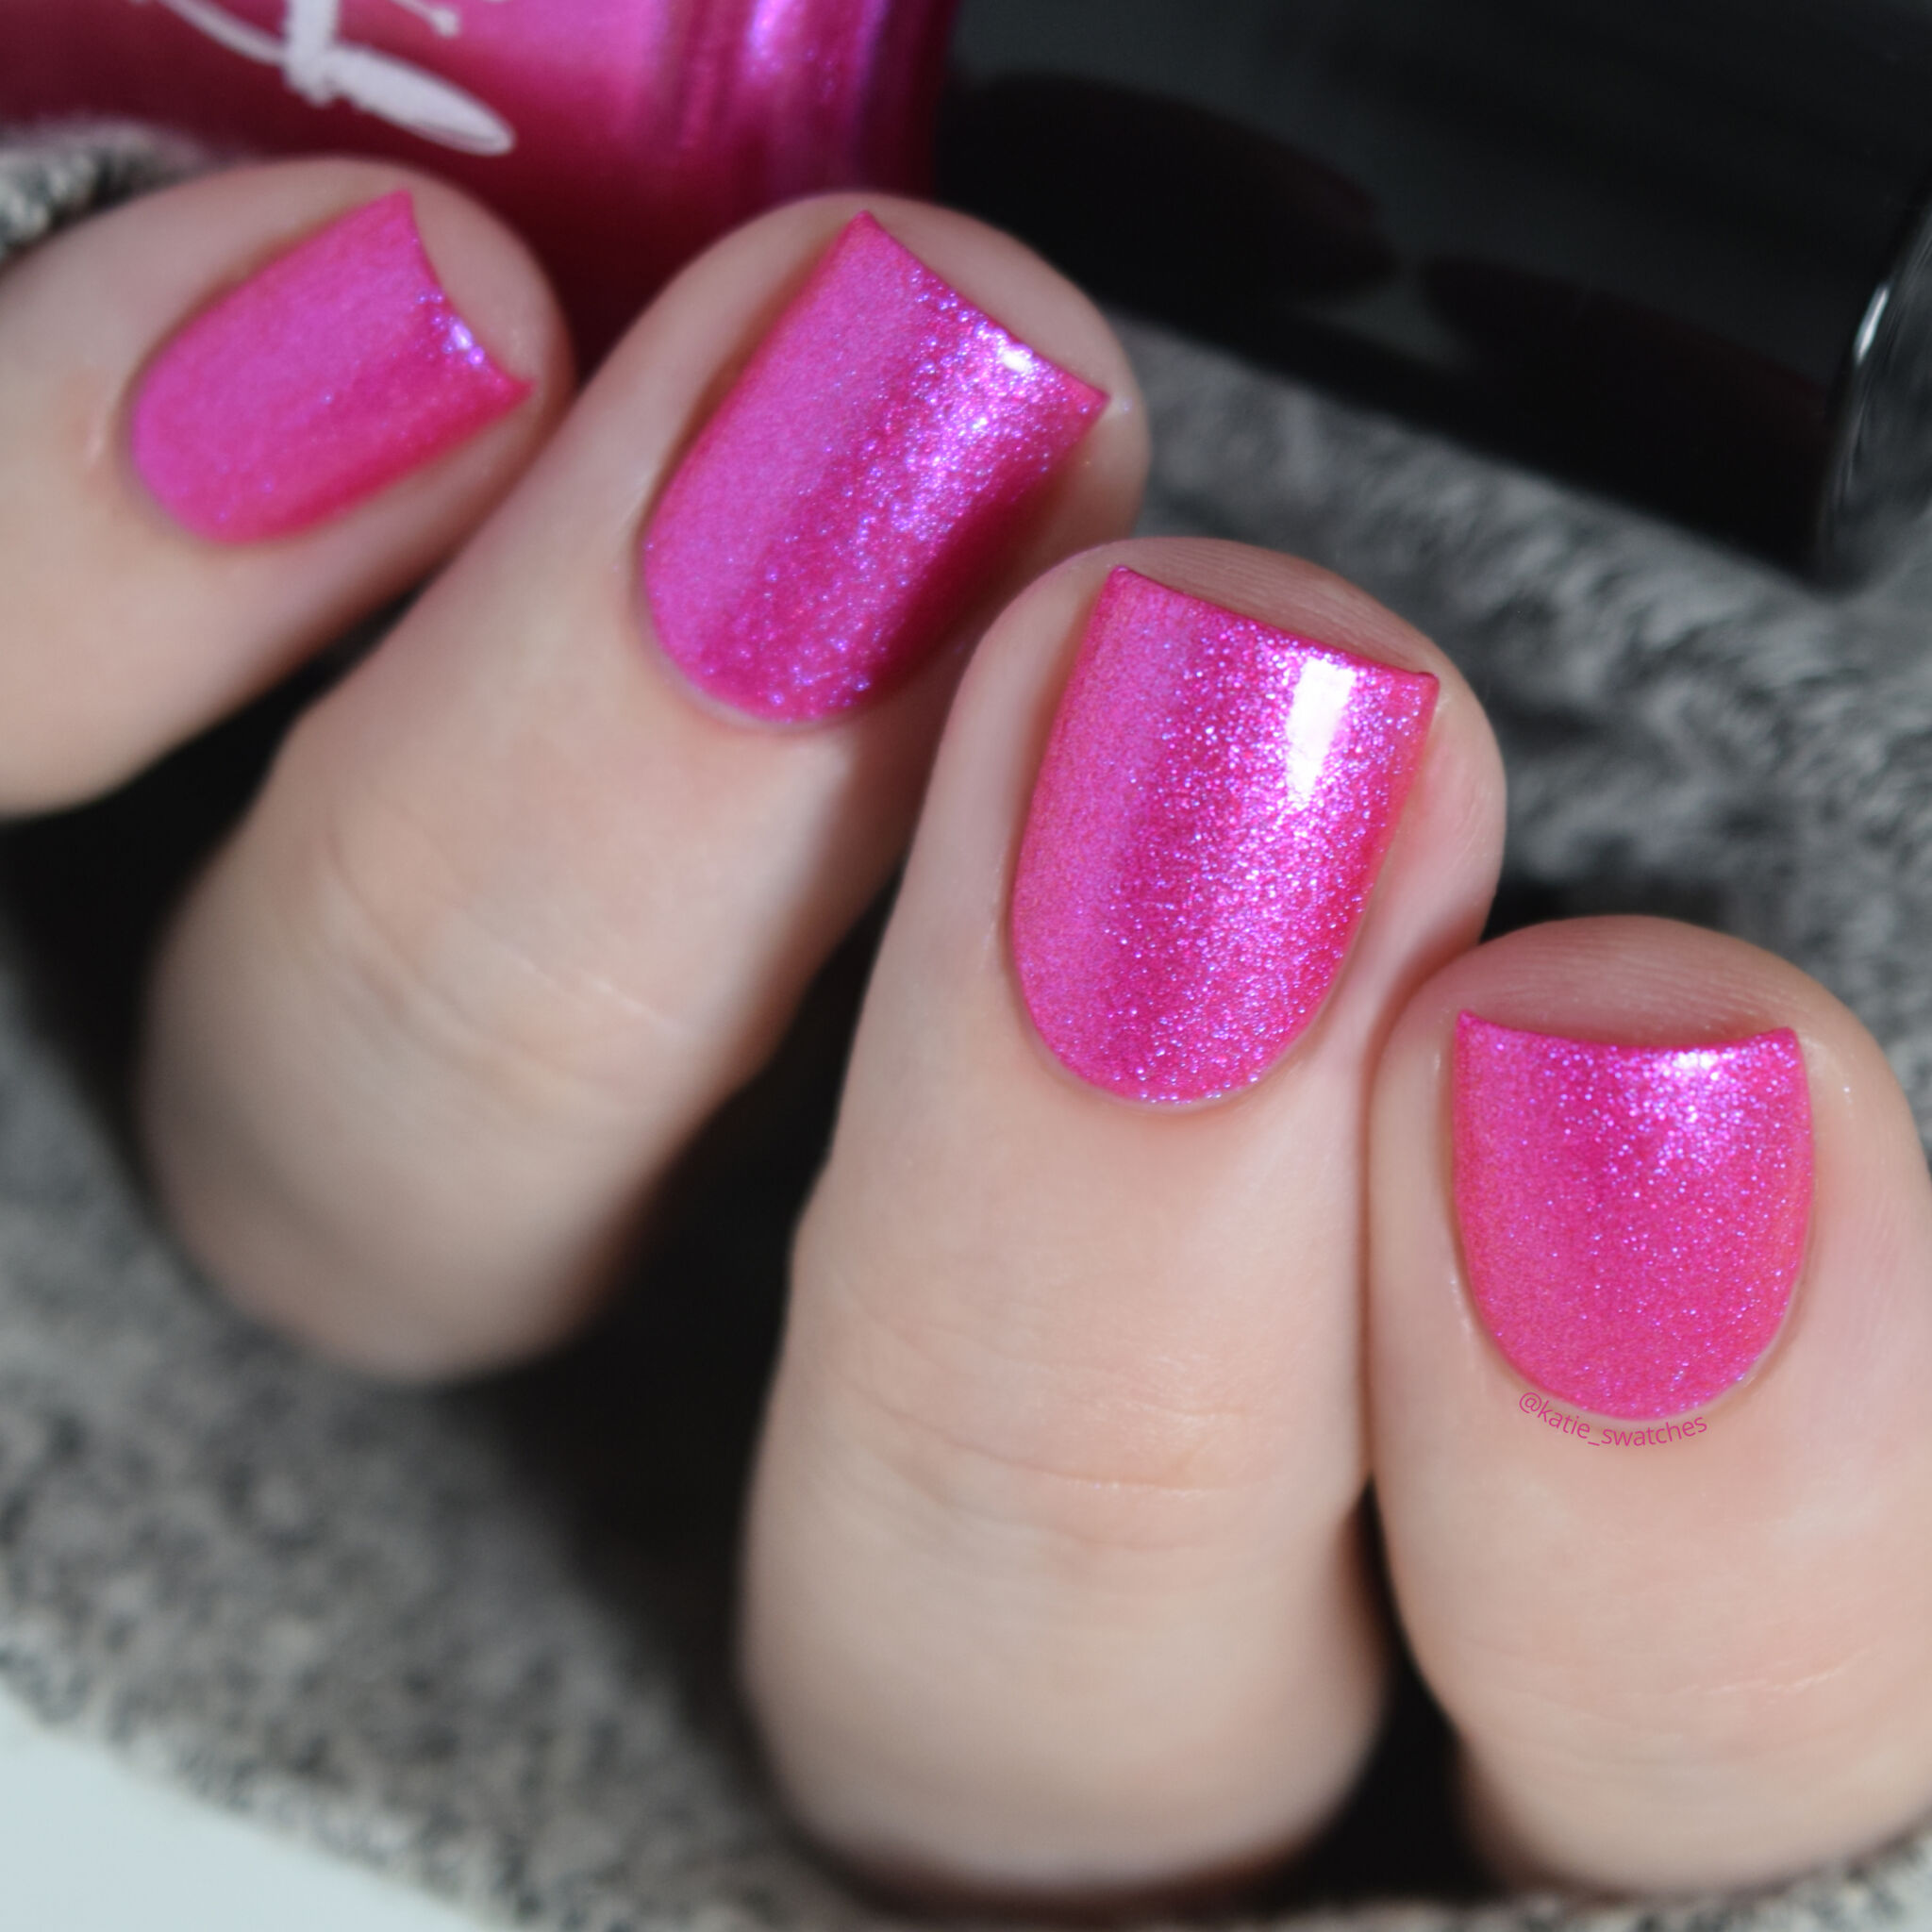 Girly Bits - Electric Boobs nail polish swatch. Fuchsia pink matte nail polish with a pink/purple shimmer.